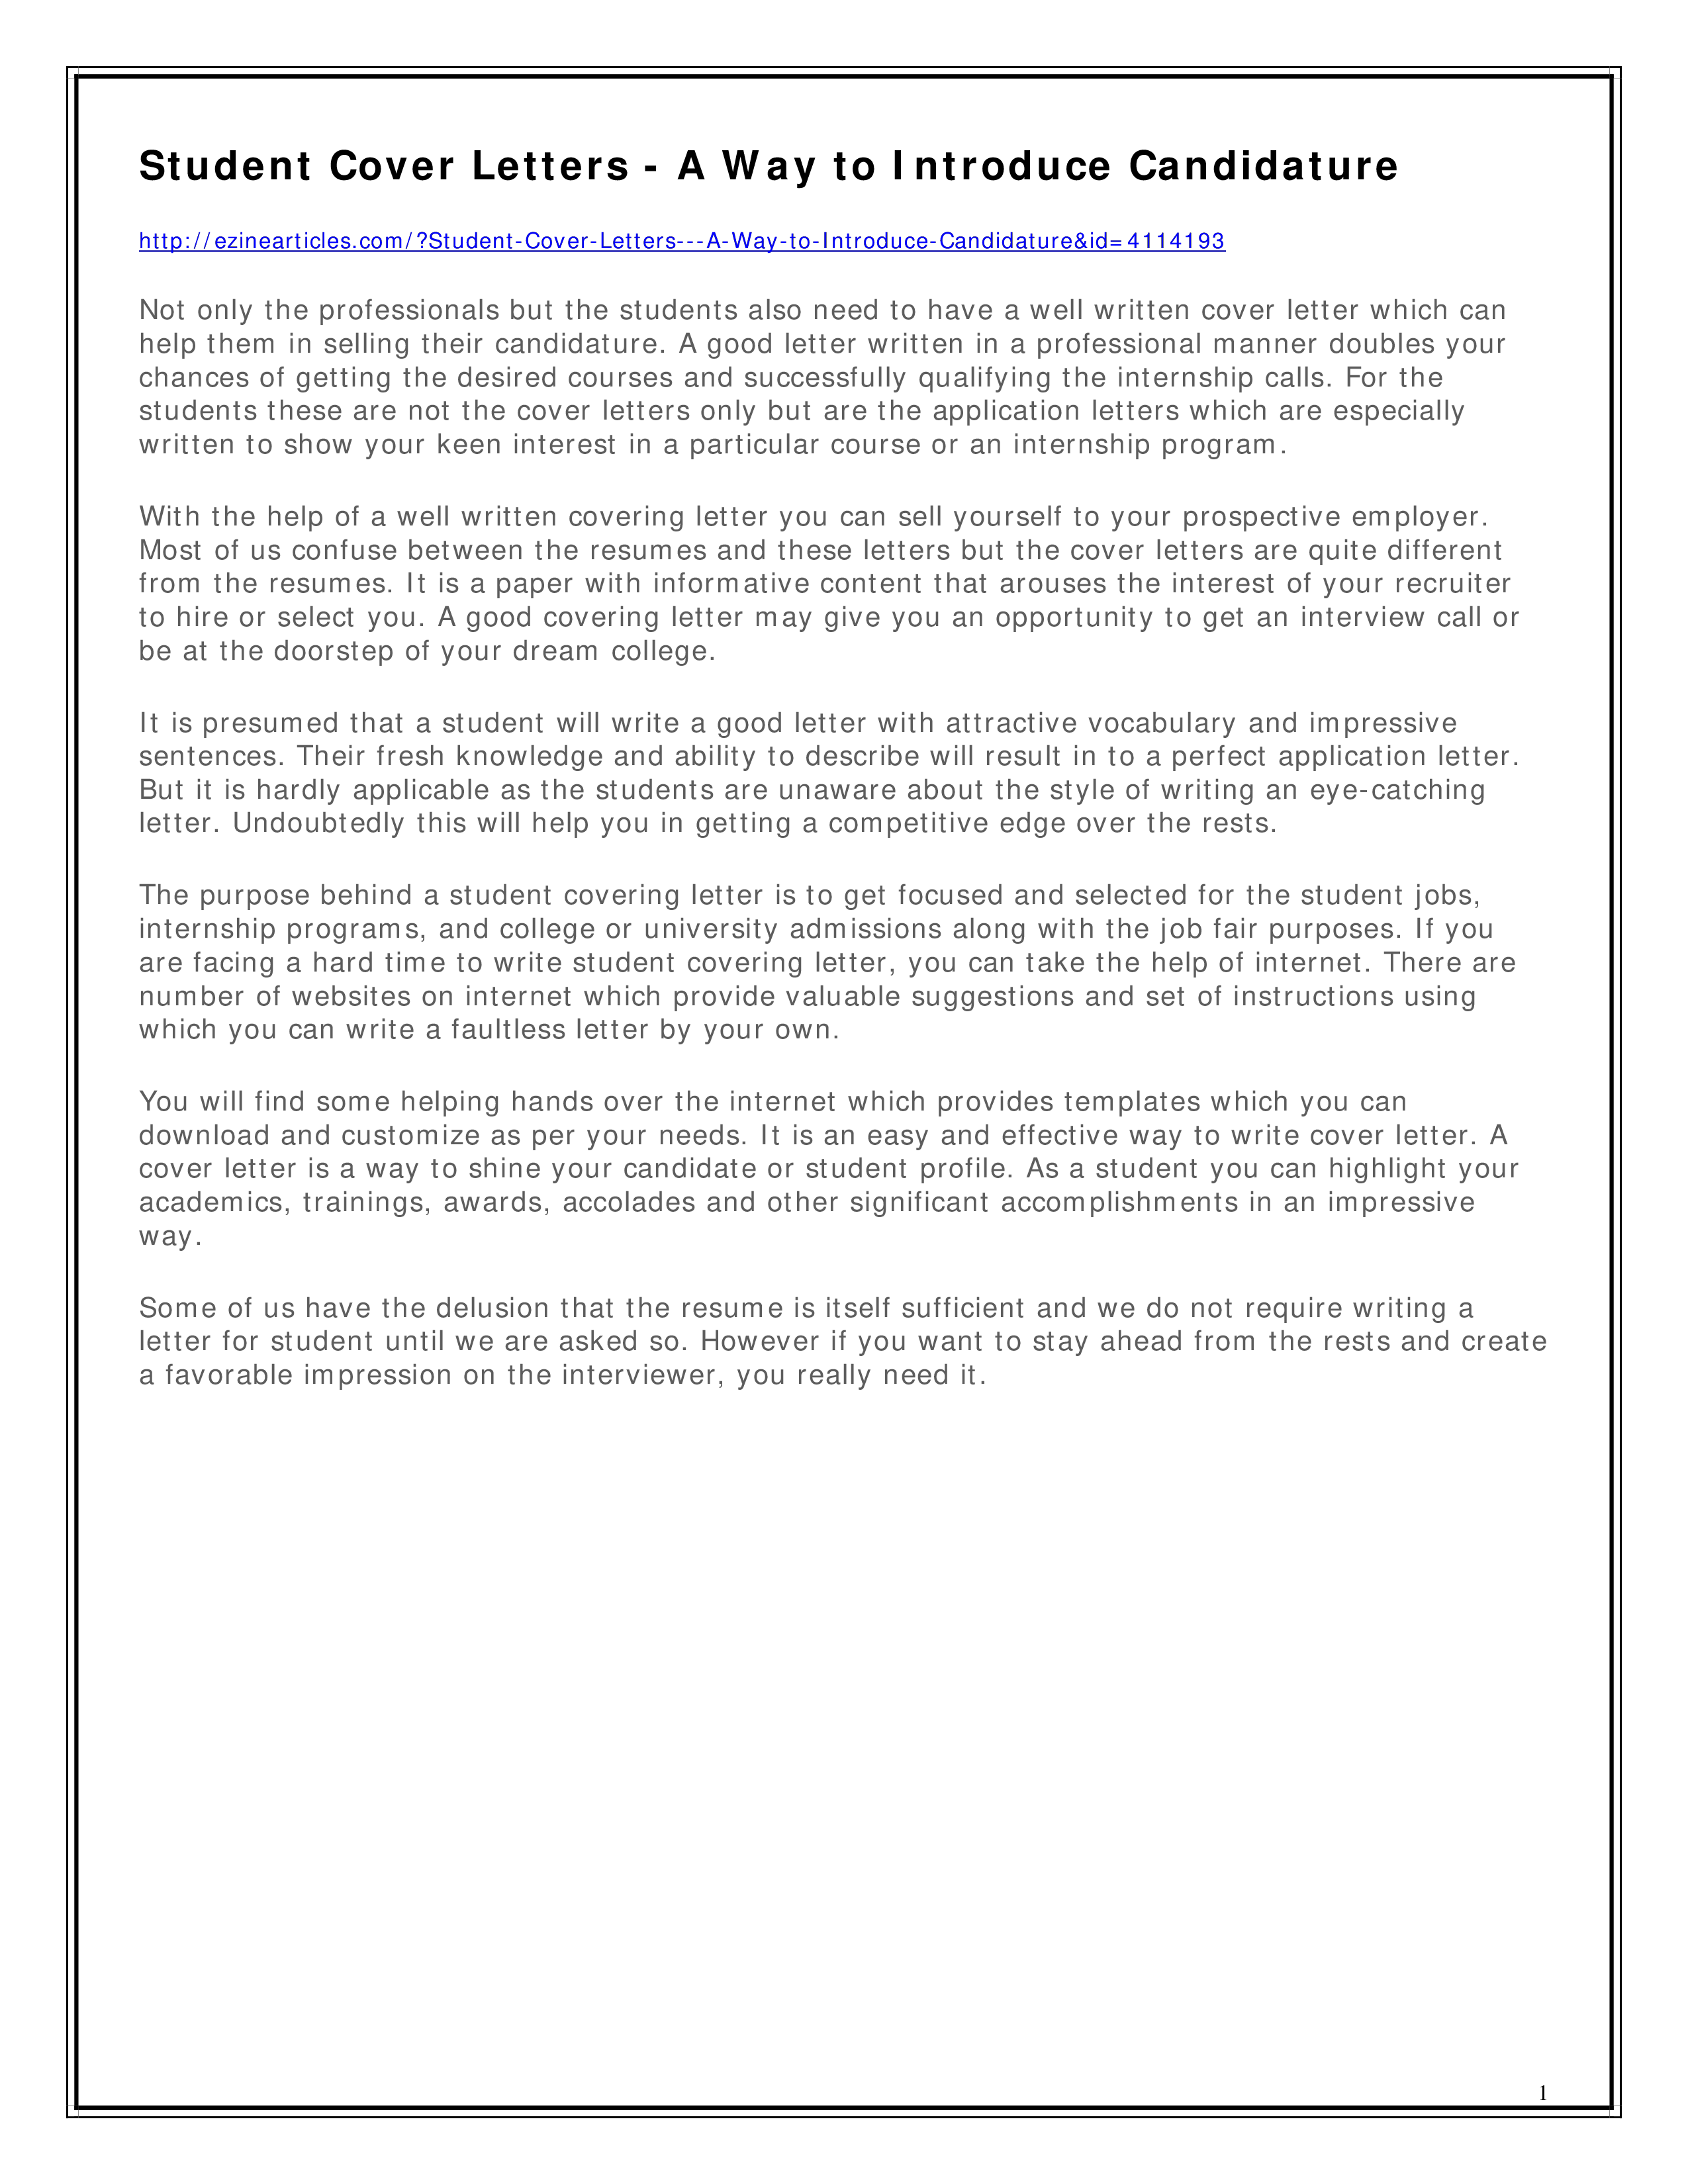 Teenage Resume Cover Letter | Templates at ...